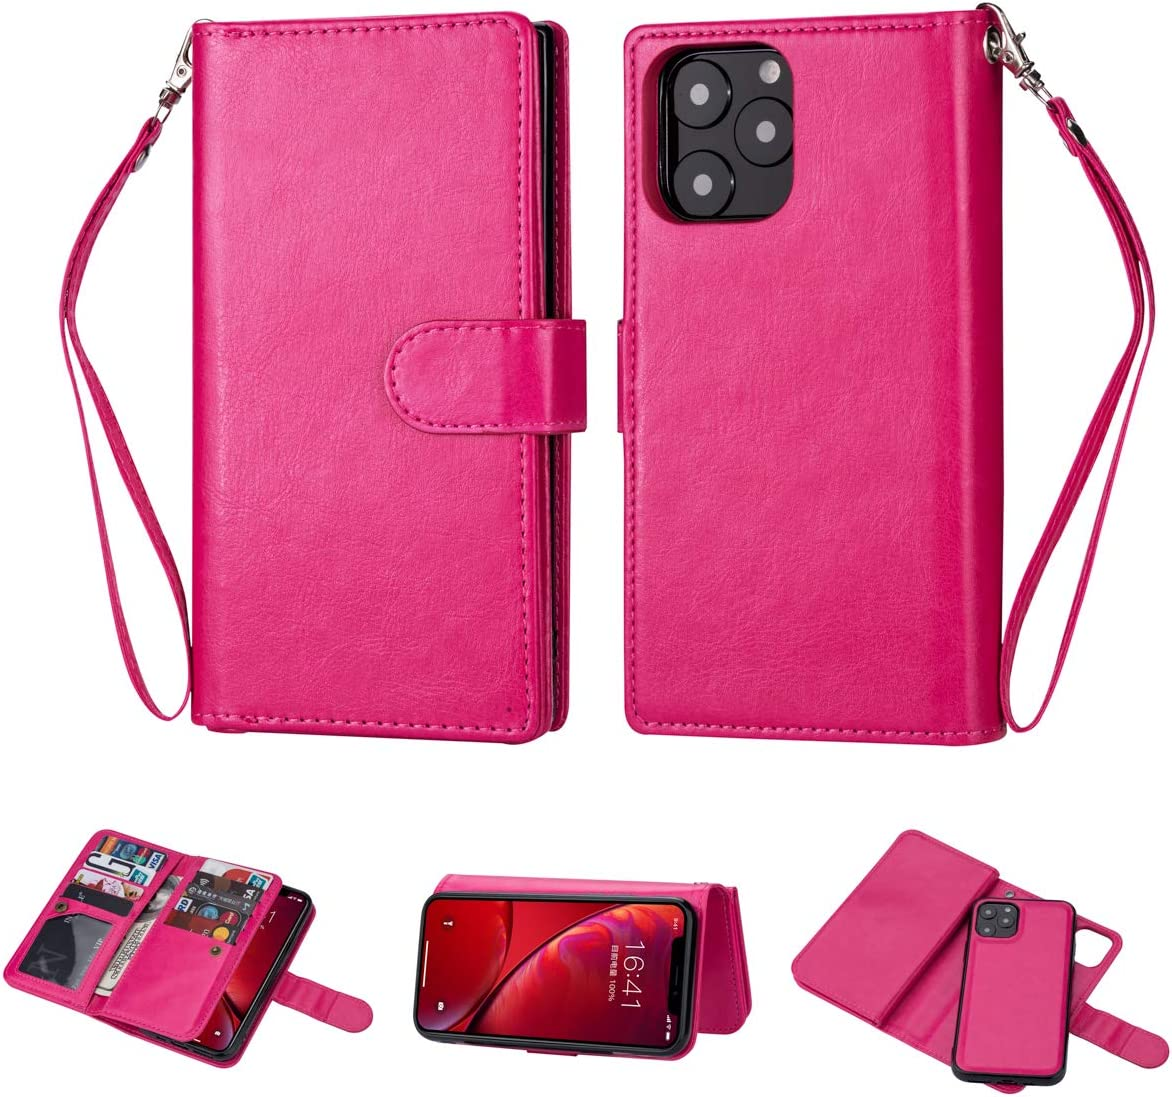 Black Sales Friday Deals Cyber Sales Monday Deals-iPhone 11 Wallet Case [2 in 1 Detachable] Premium Vintage Leather Wallet Case Magnetic Detachable Slim Back Cover Card Holder Slot Wrist Strap (Pink)